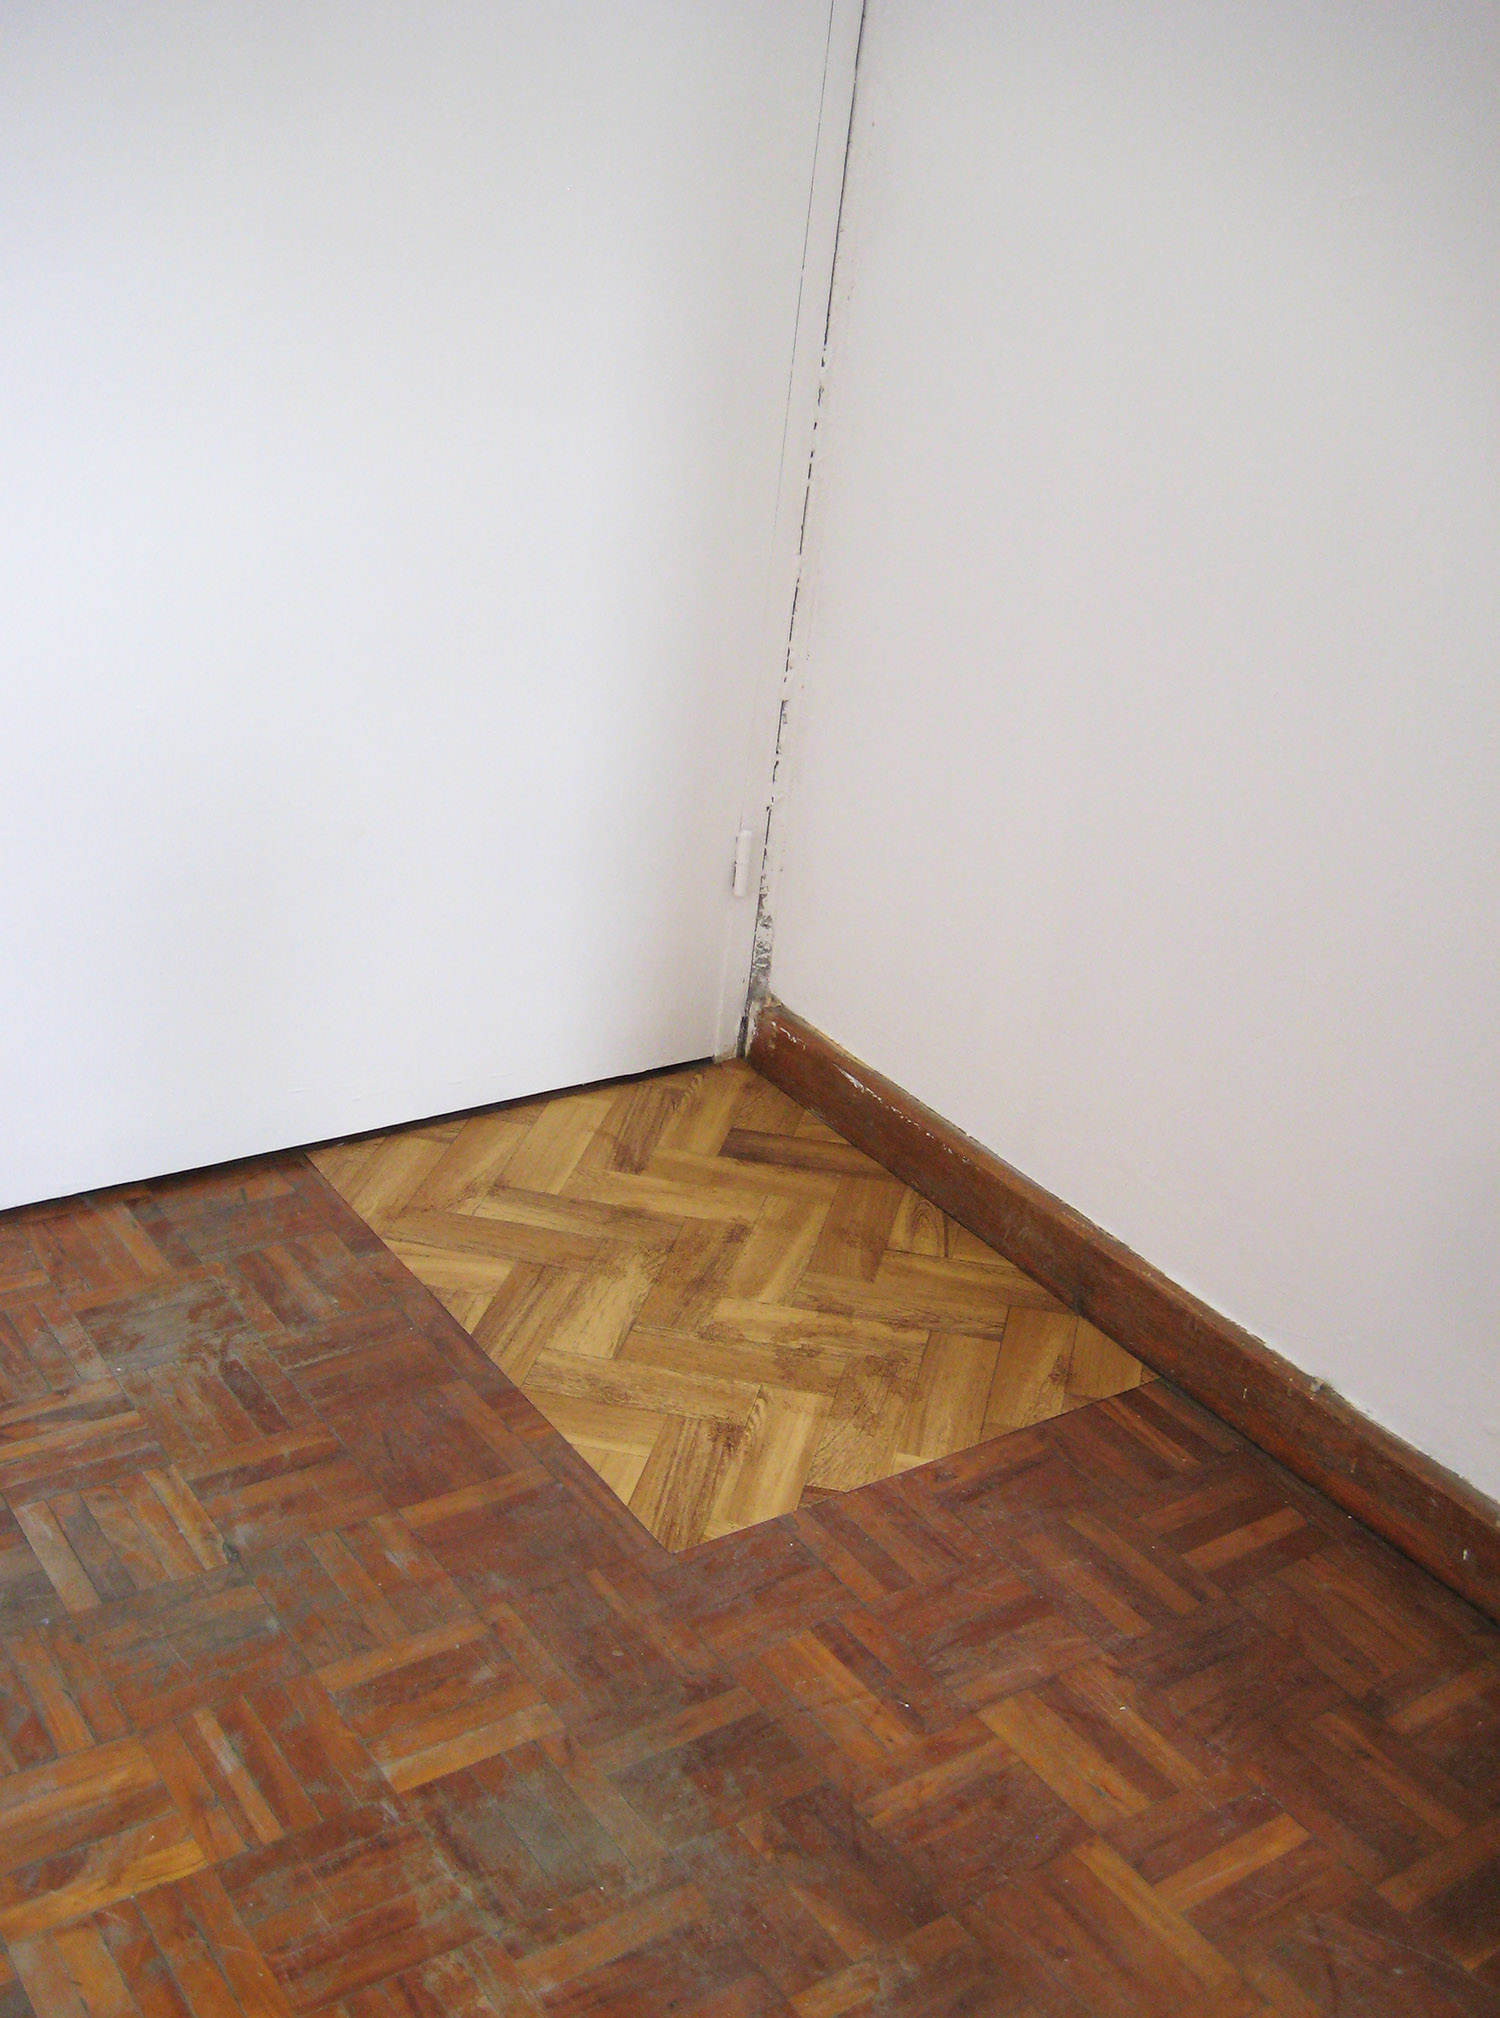 Stain Painting,  2009 Acrylic on found vinyl flooring 62 x 48 cm (24.5 x 19 inches)